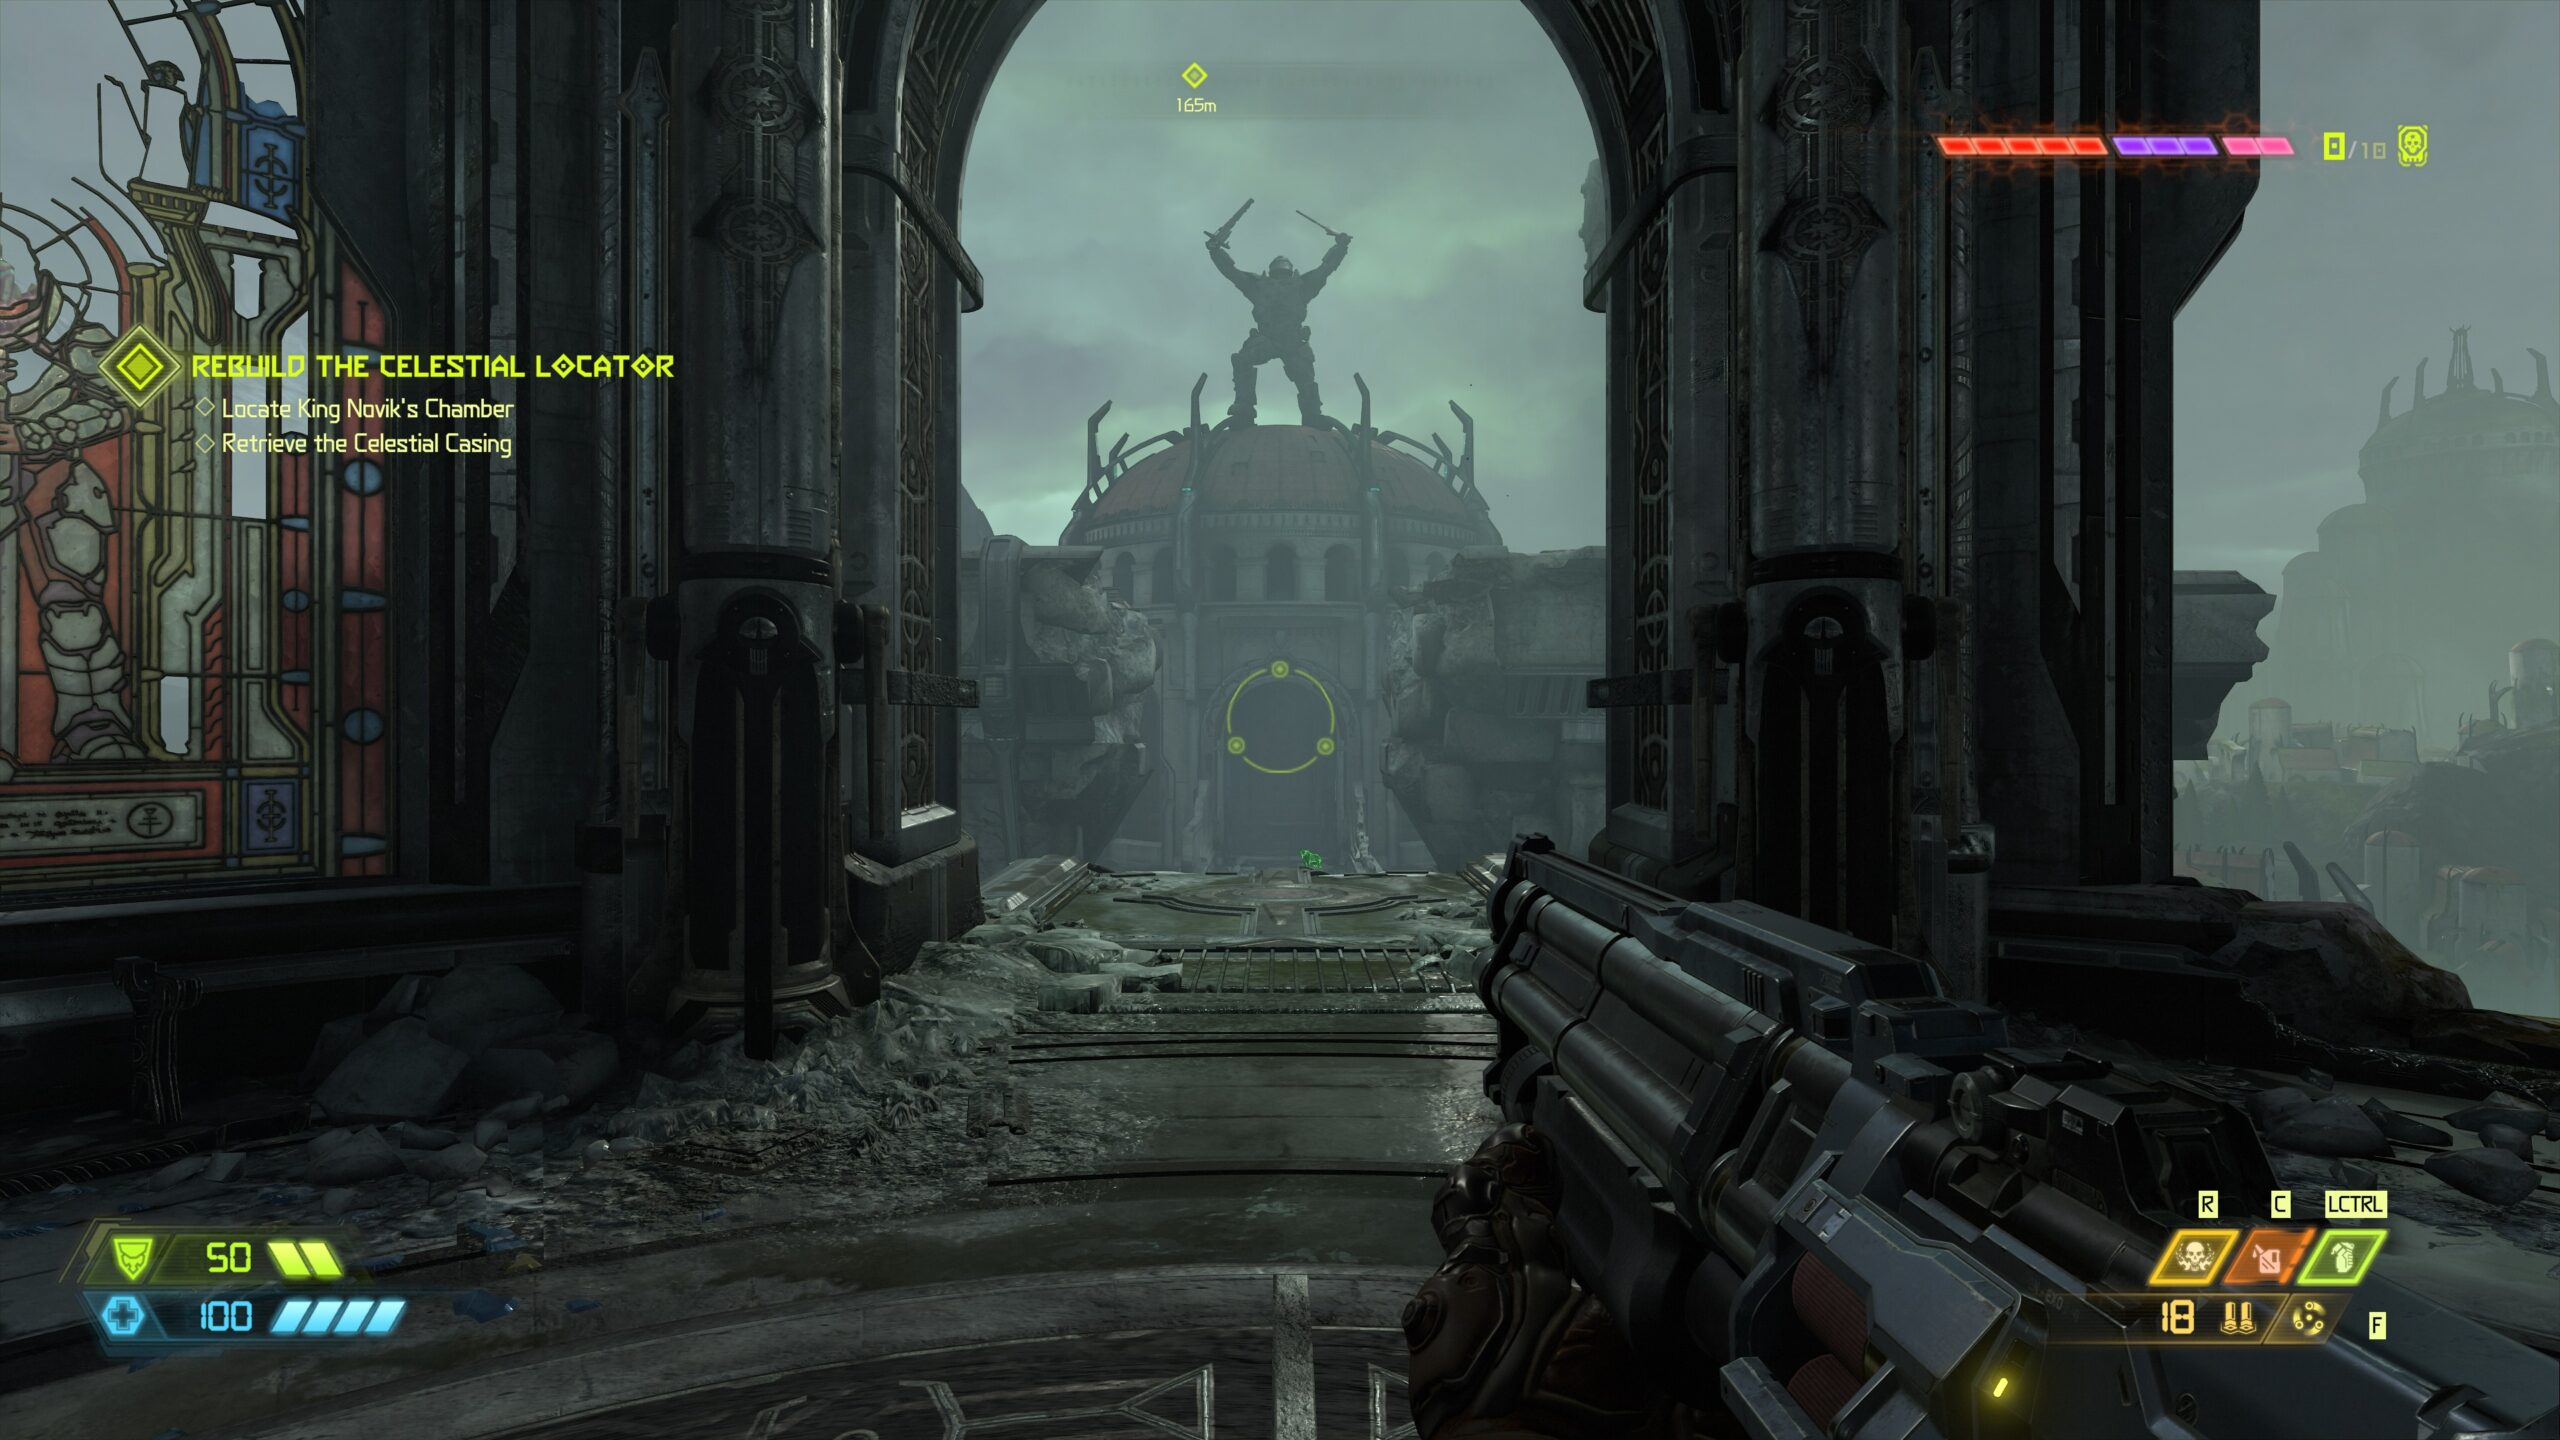 Doom Eternal Pc Performance Analysis Rip And Tear Without A Care